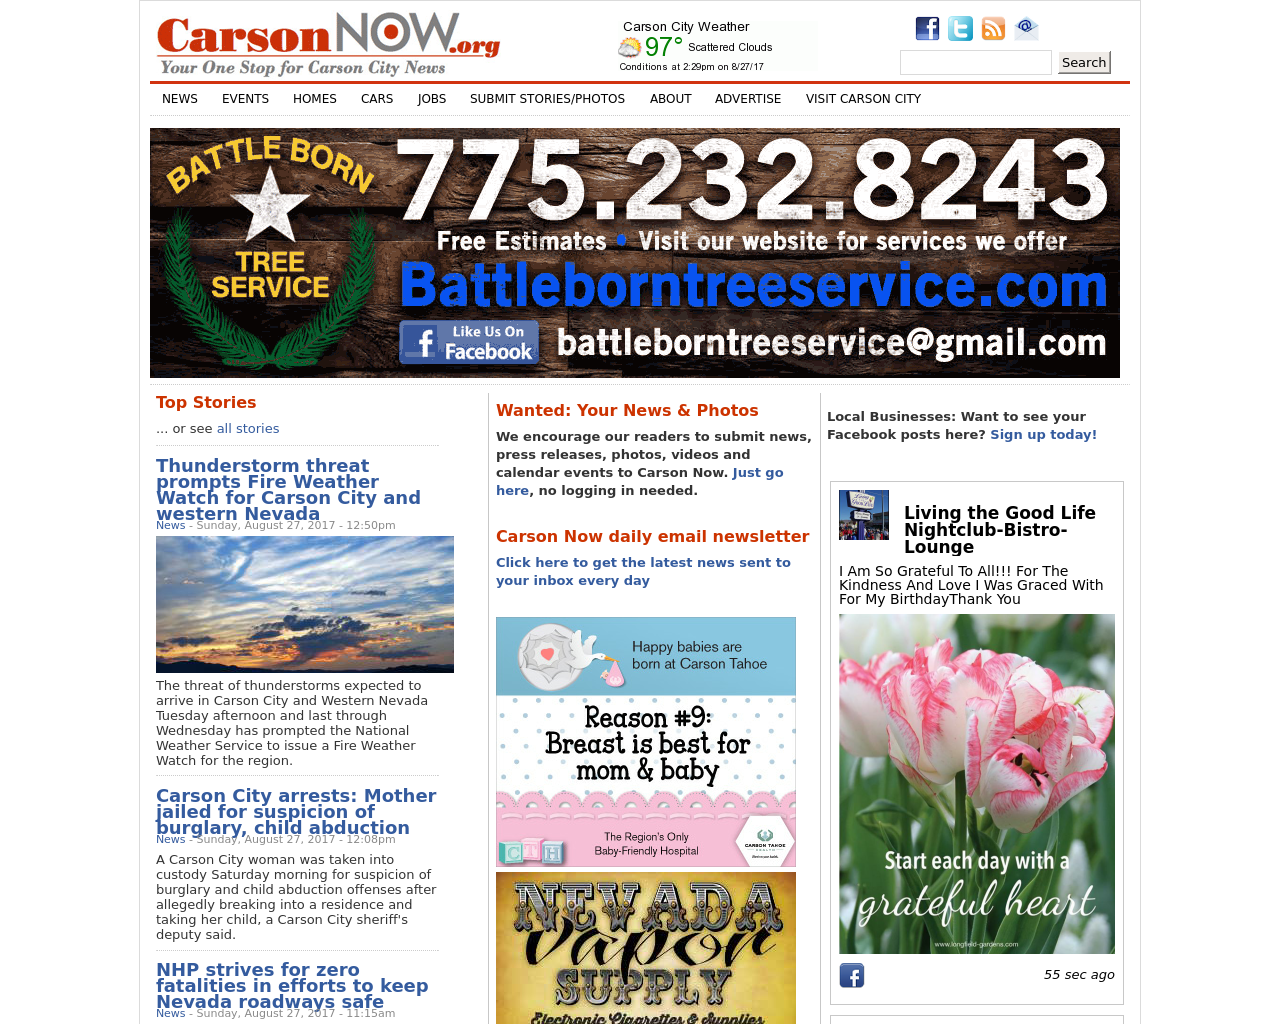 Carson-Now-Advertising-Reviews-Pricing